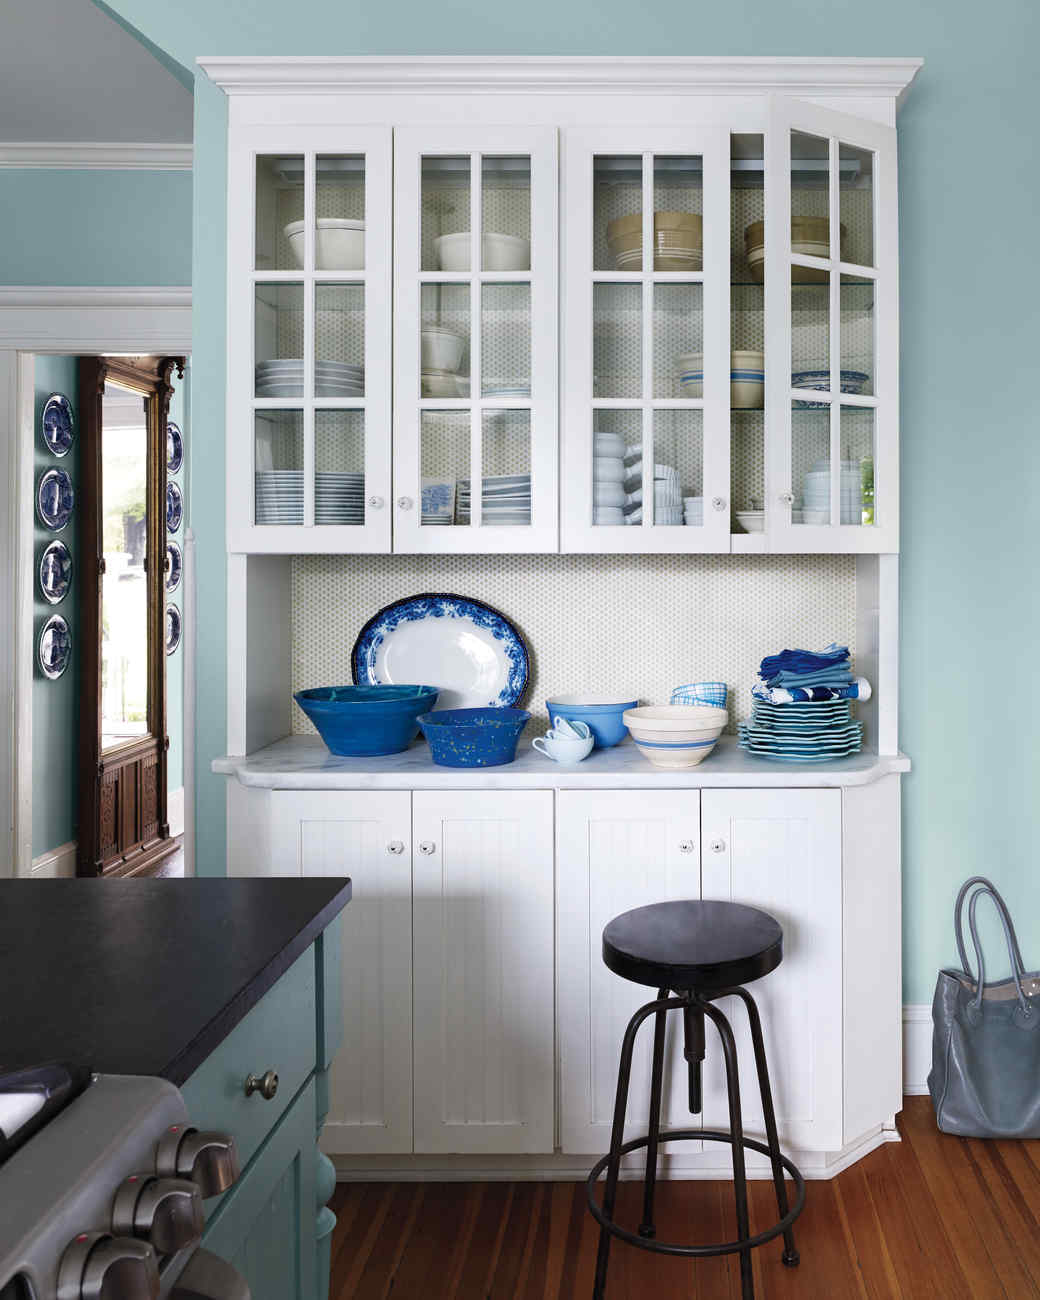 kitchen0199189-md110699_vert 6 Affordable Organizing and Decoration Ideas for your Kitchen